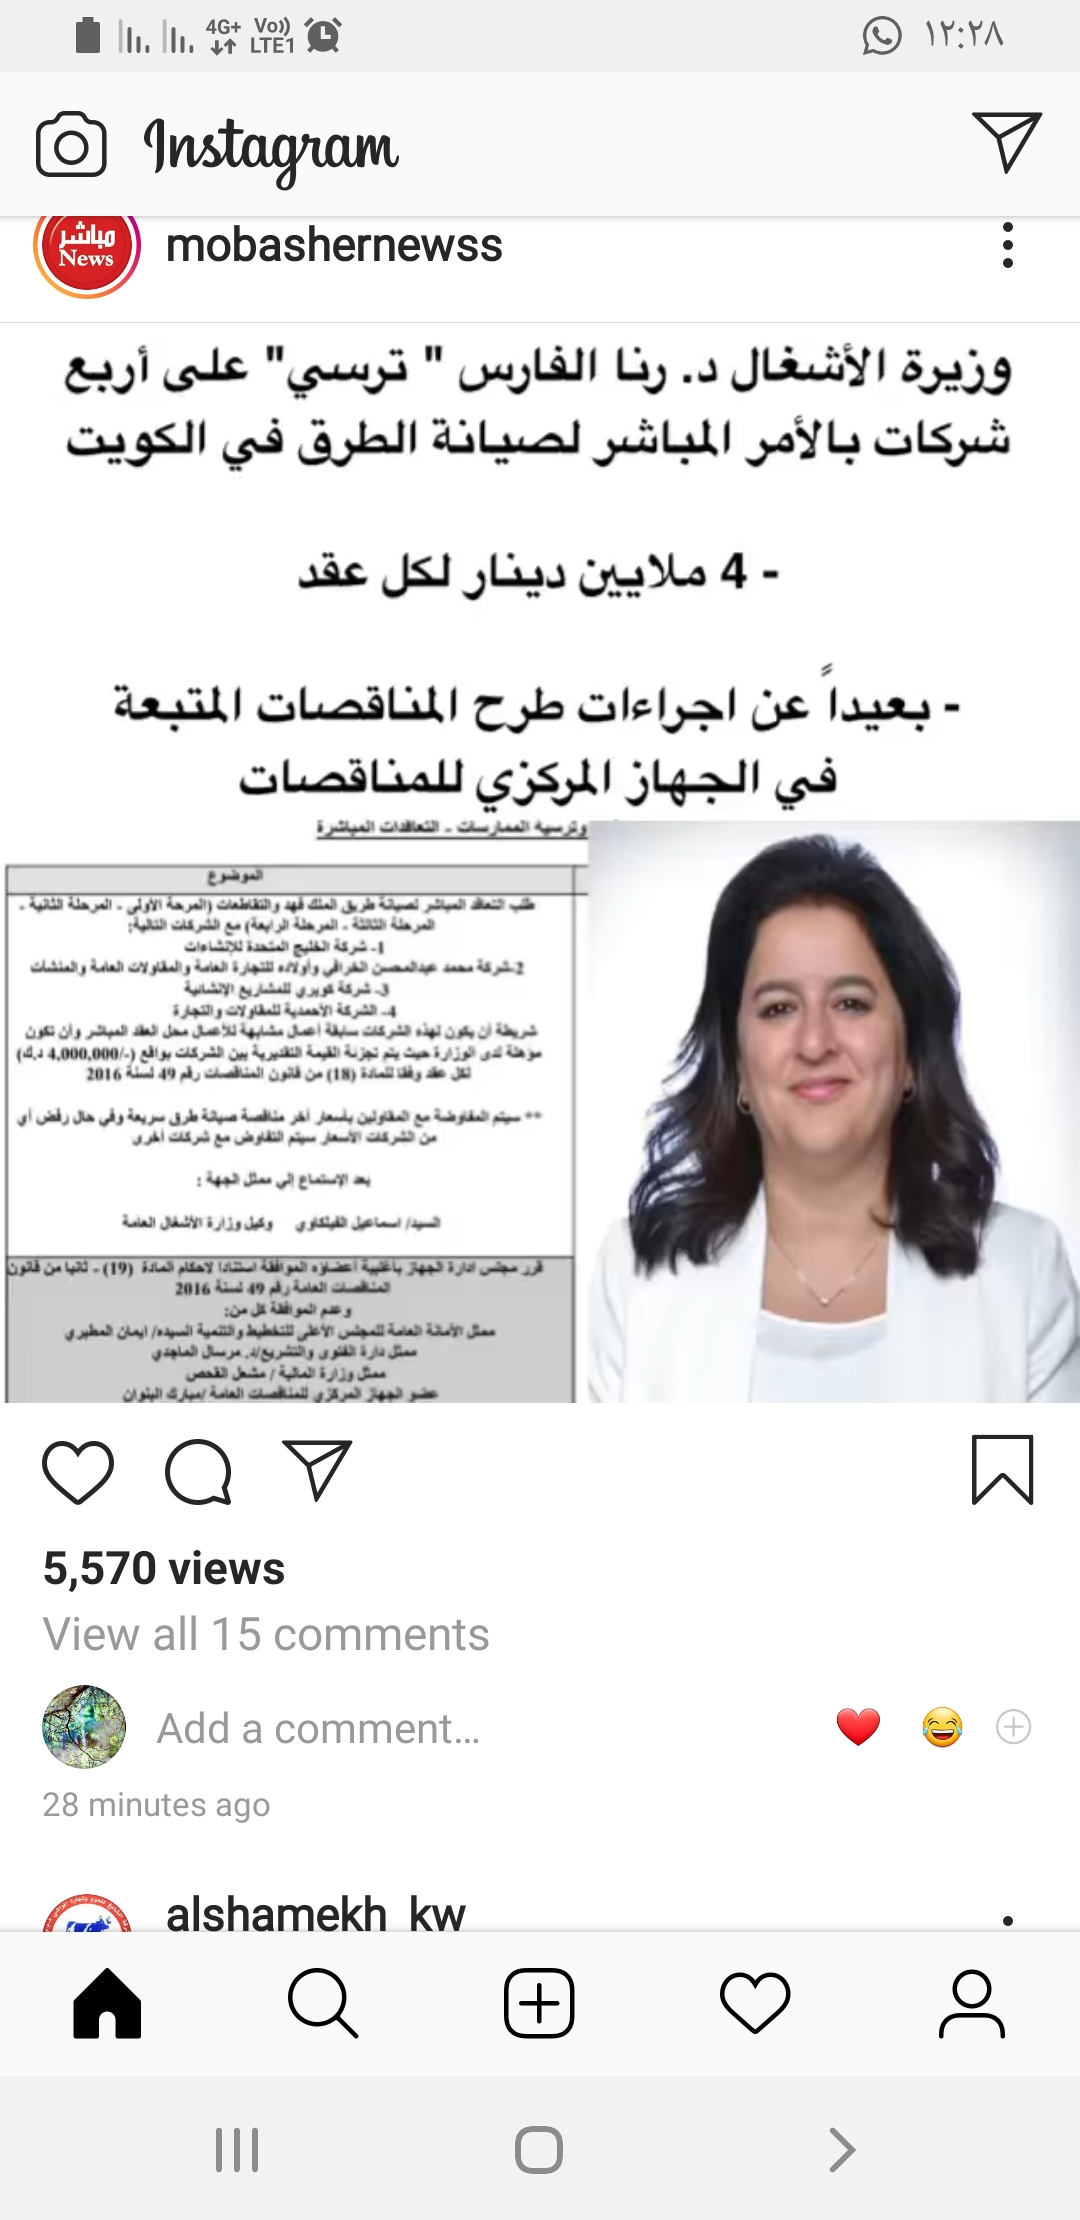 Screenshot_٢٠٢٠٠٣٢٦-٠٠٢٨٢٧_Instagram.jpg